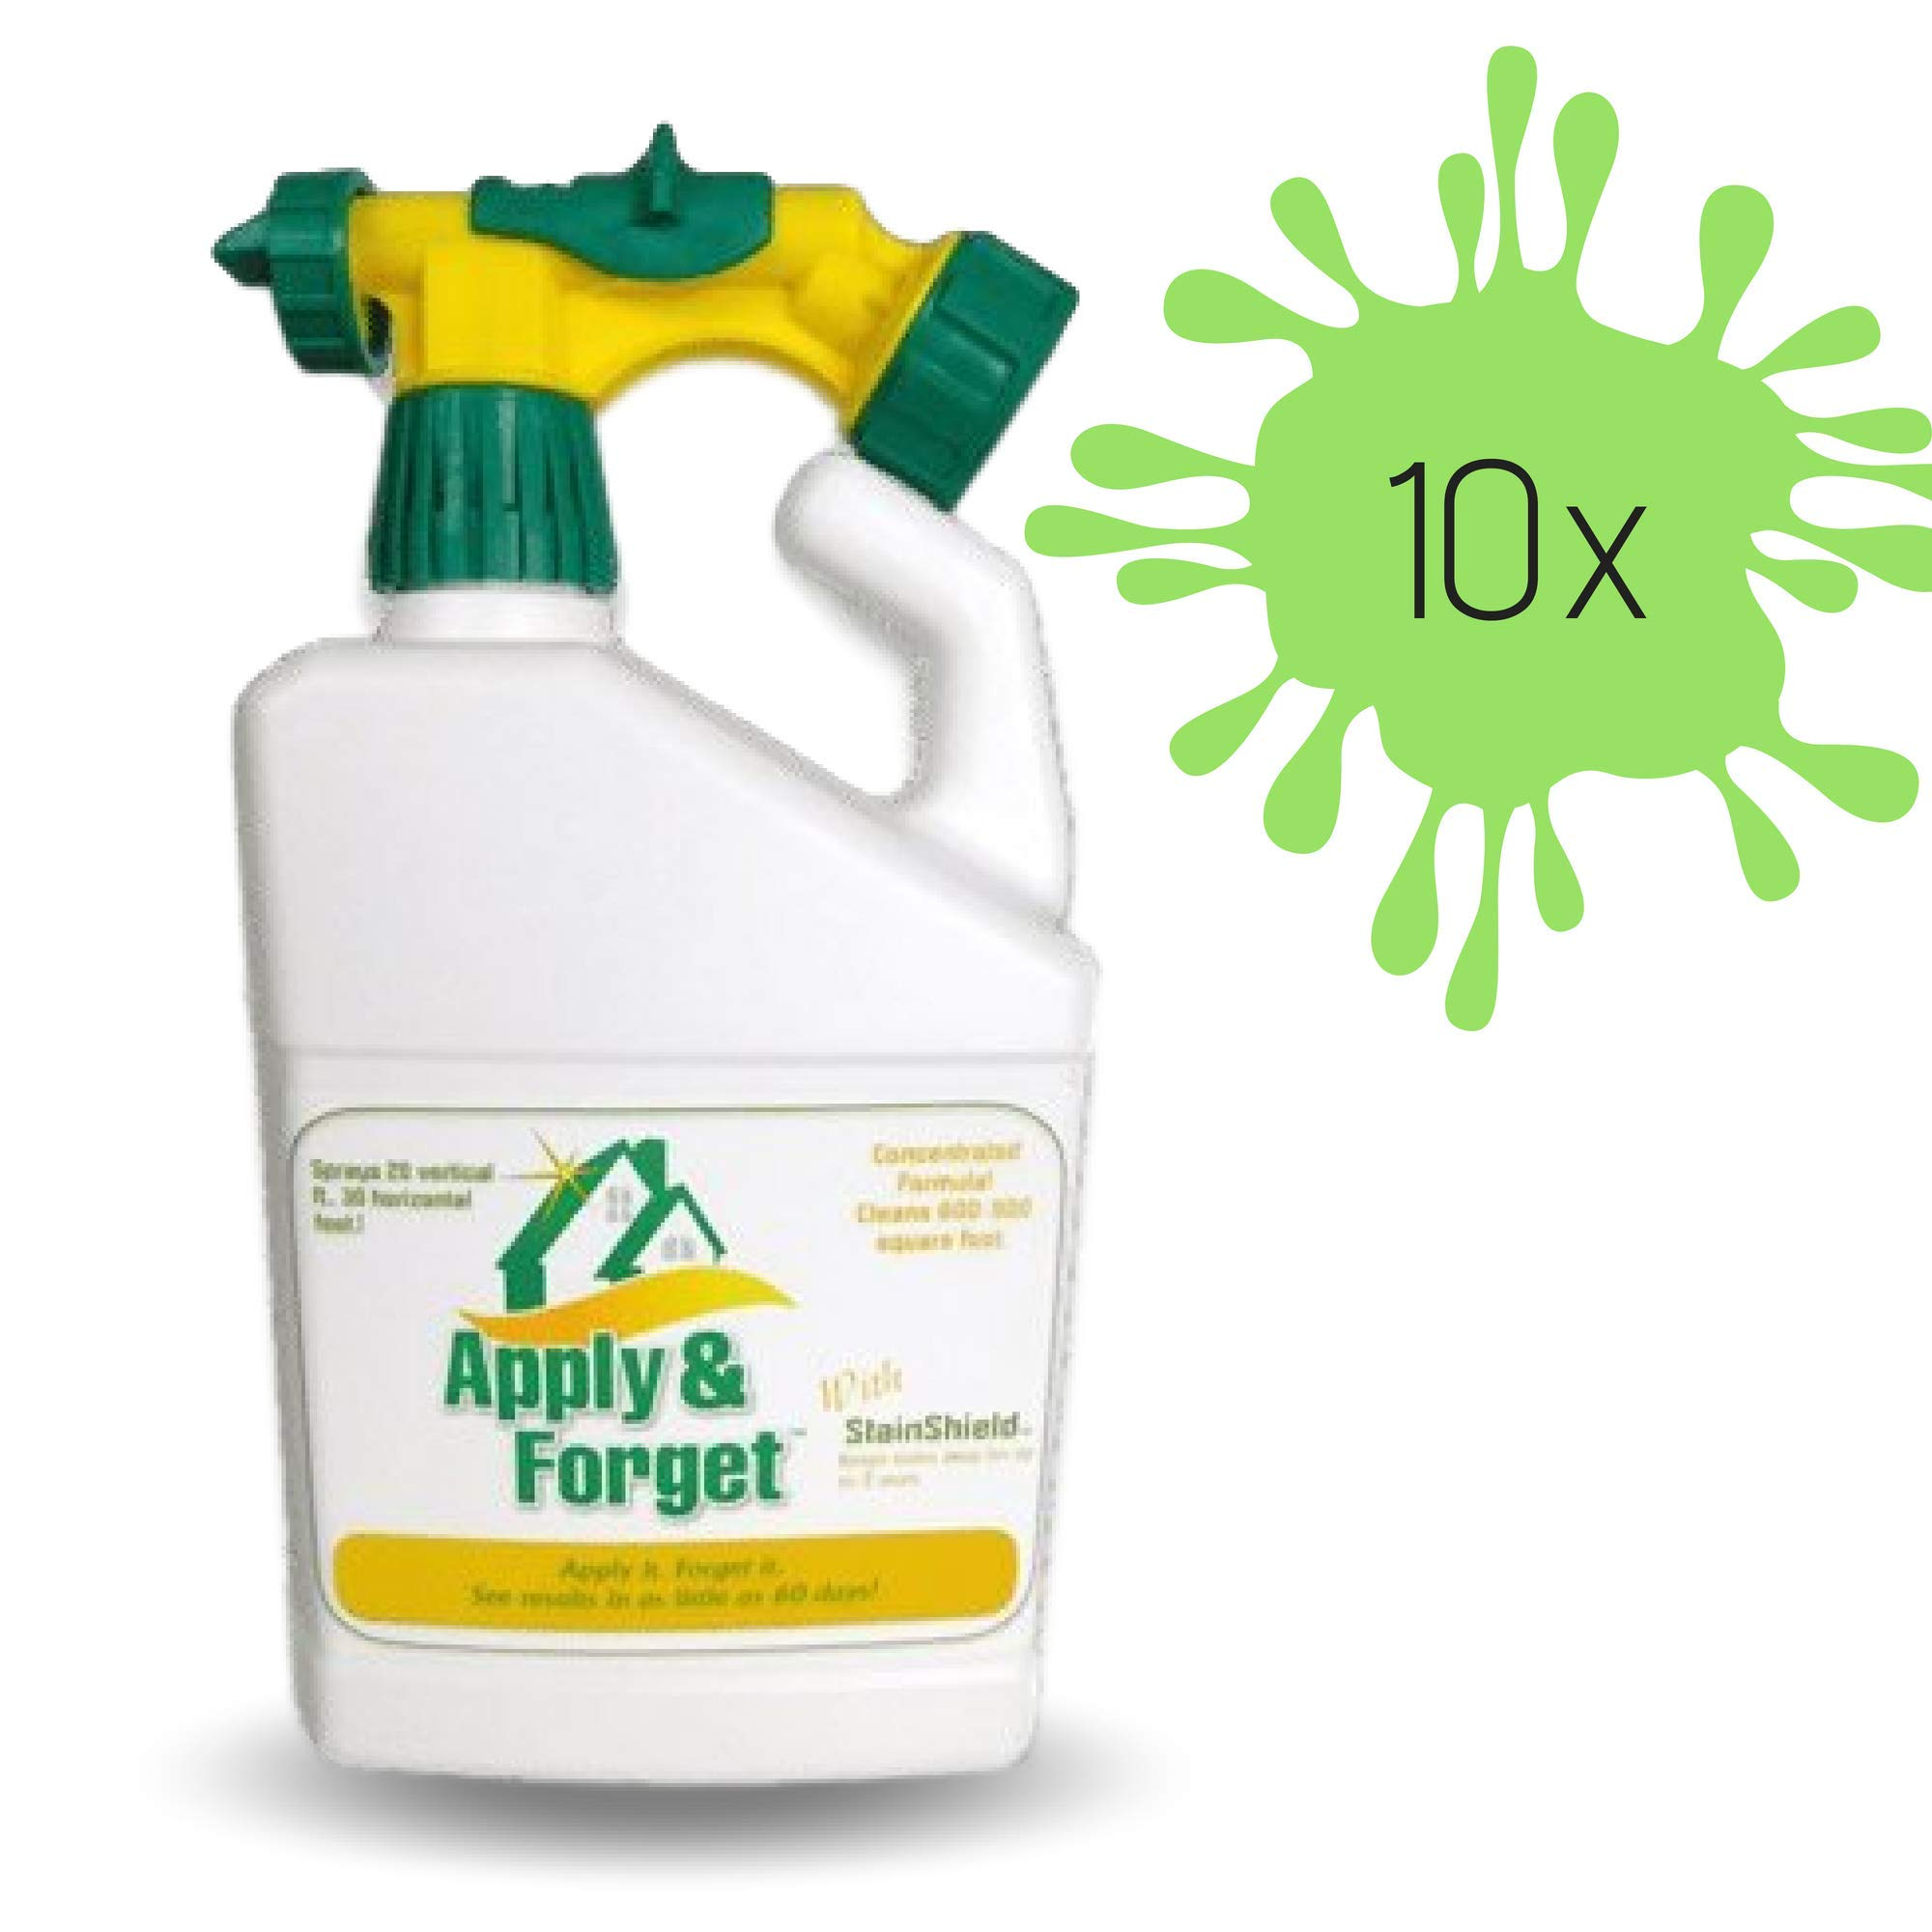 Apply & Forget Exterior Cleaner | House and Deck Cleaner - Outdoor Cleaner, Mold Remover, Mildew Remover, Stain Remover